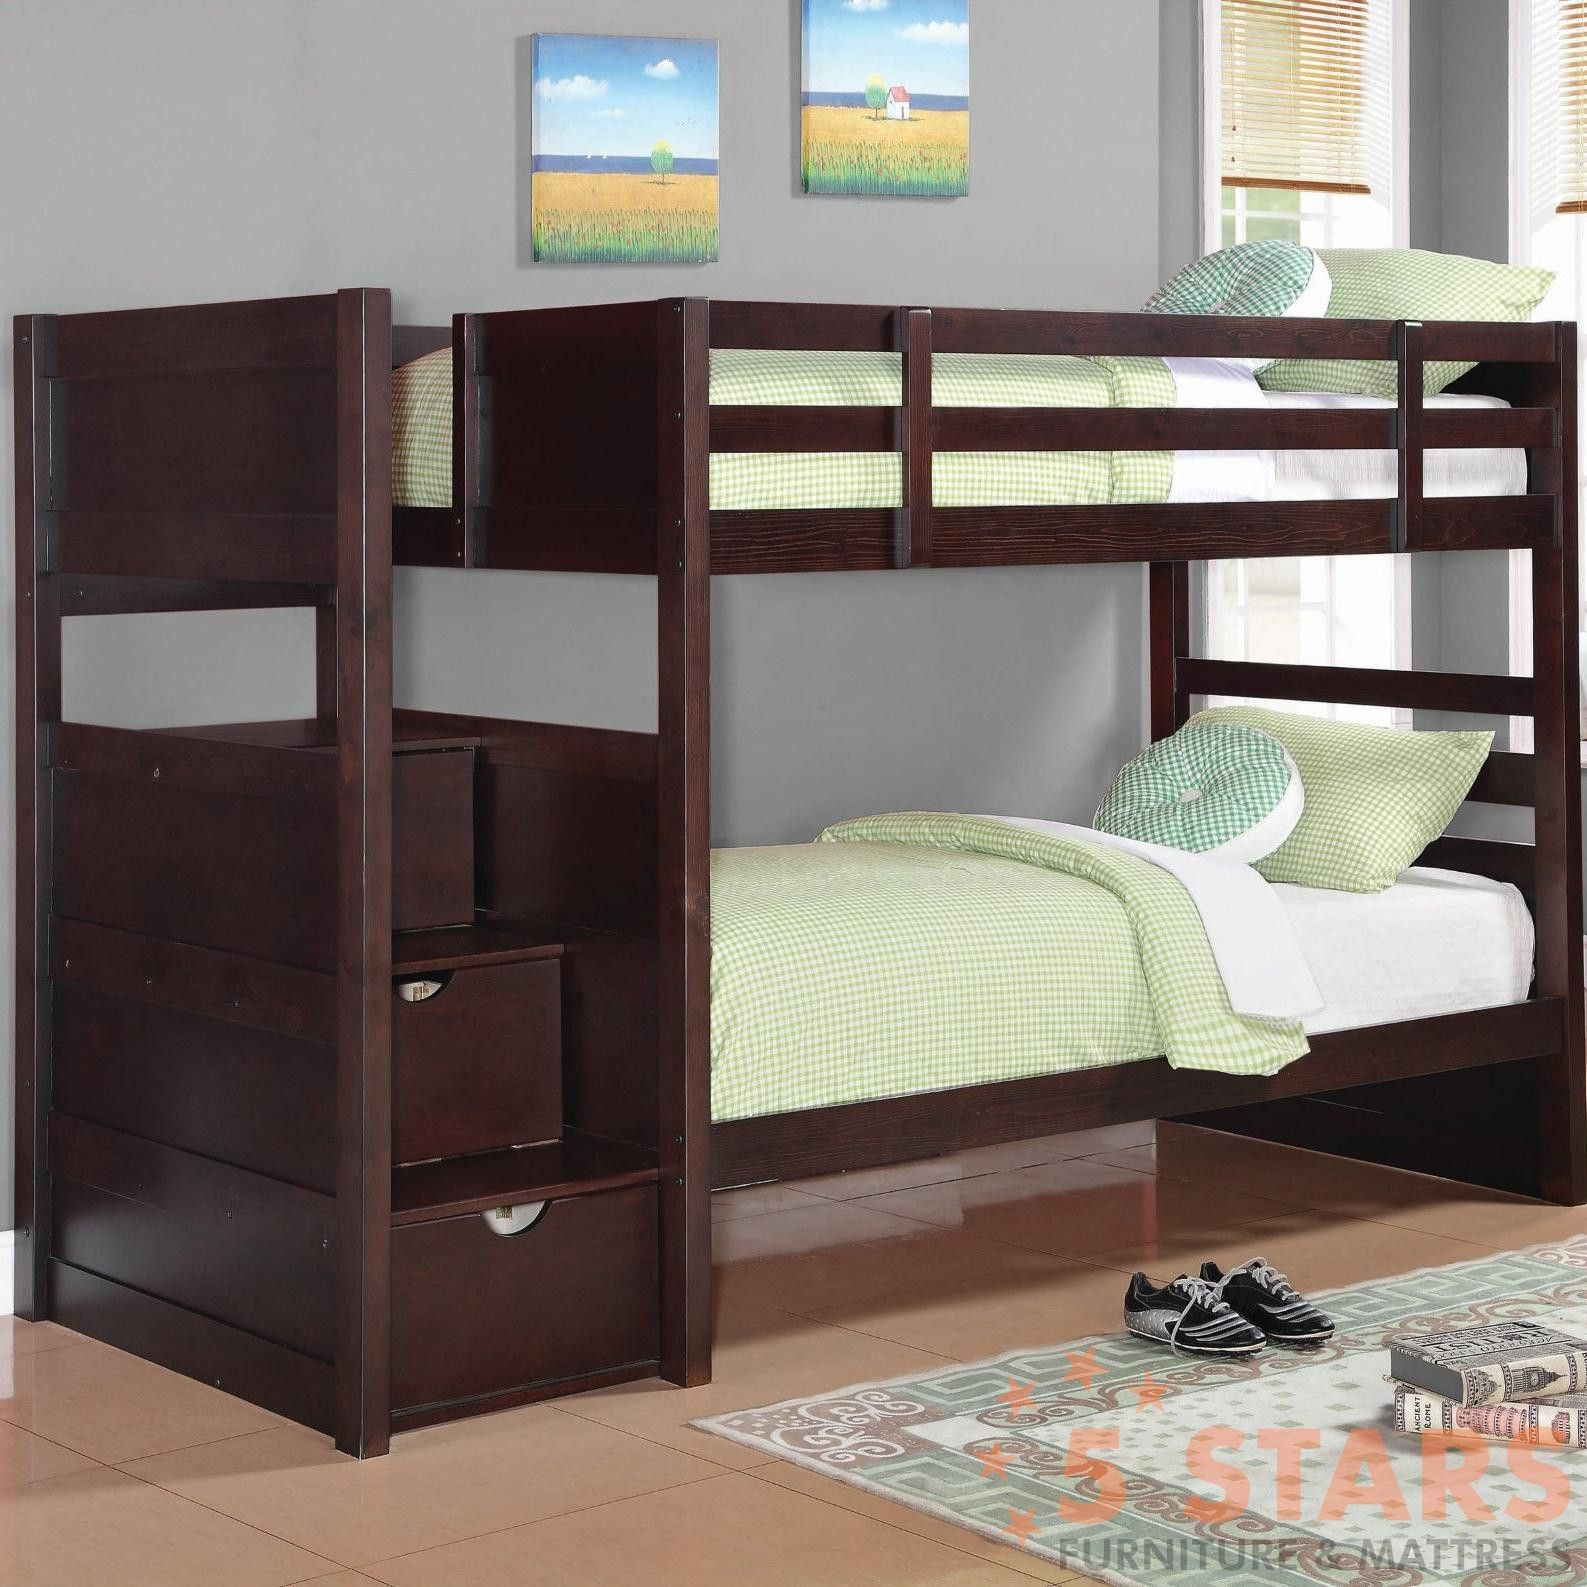 Elliott Twin Bunk Bed Bunk beds with storage, Cool bunk